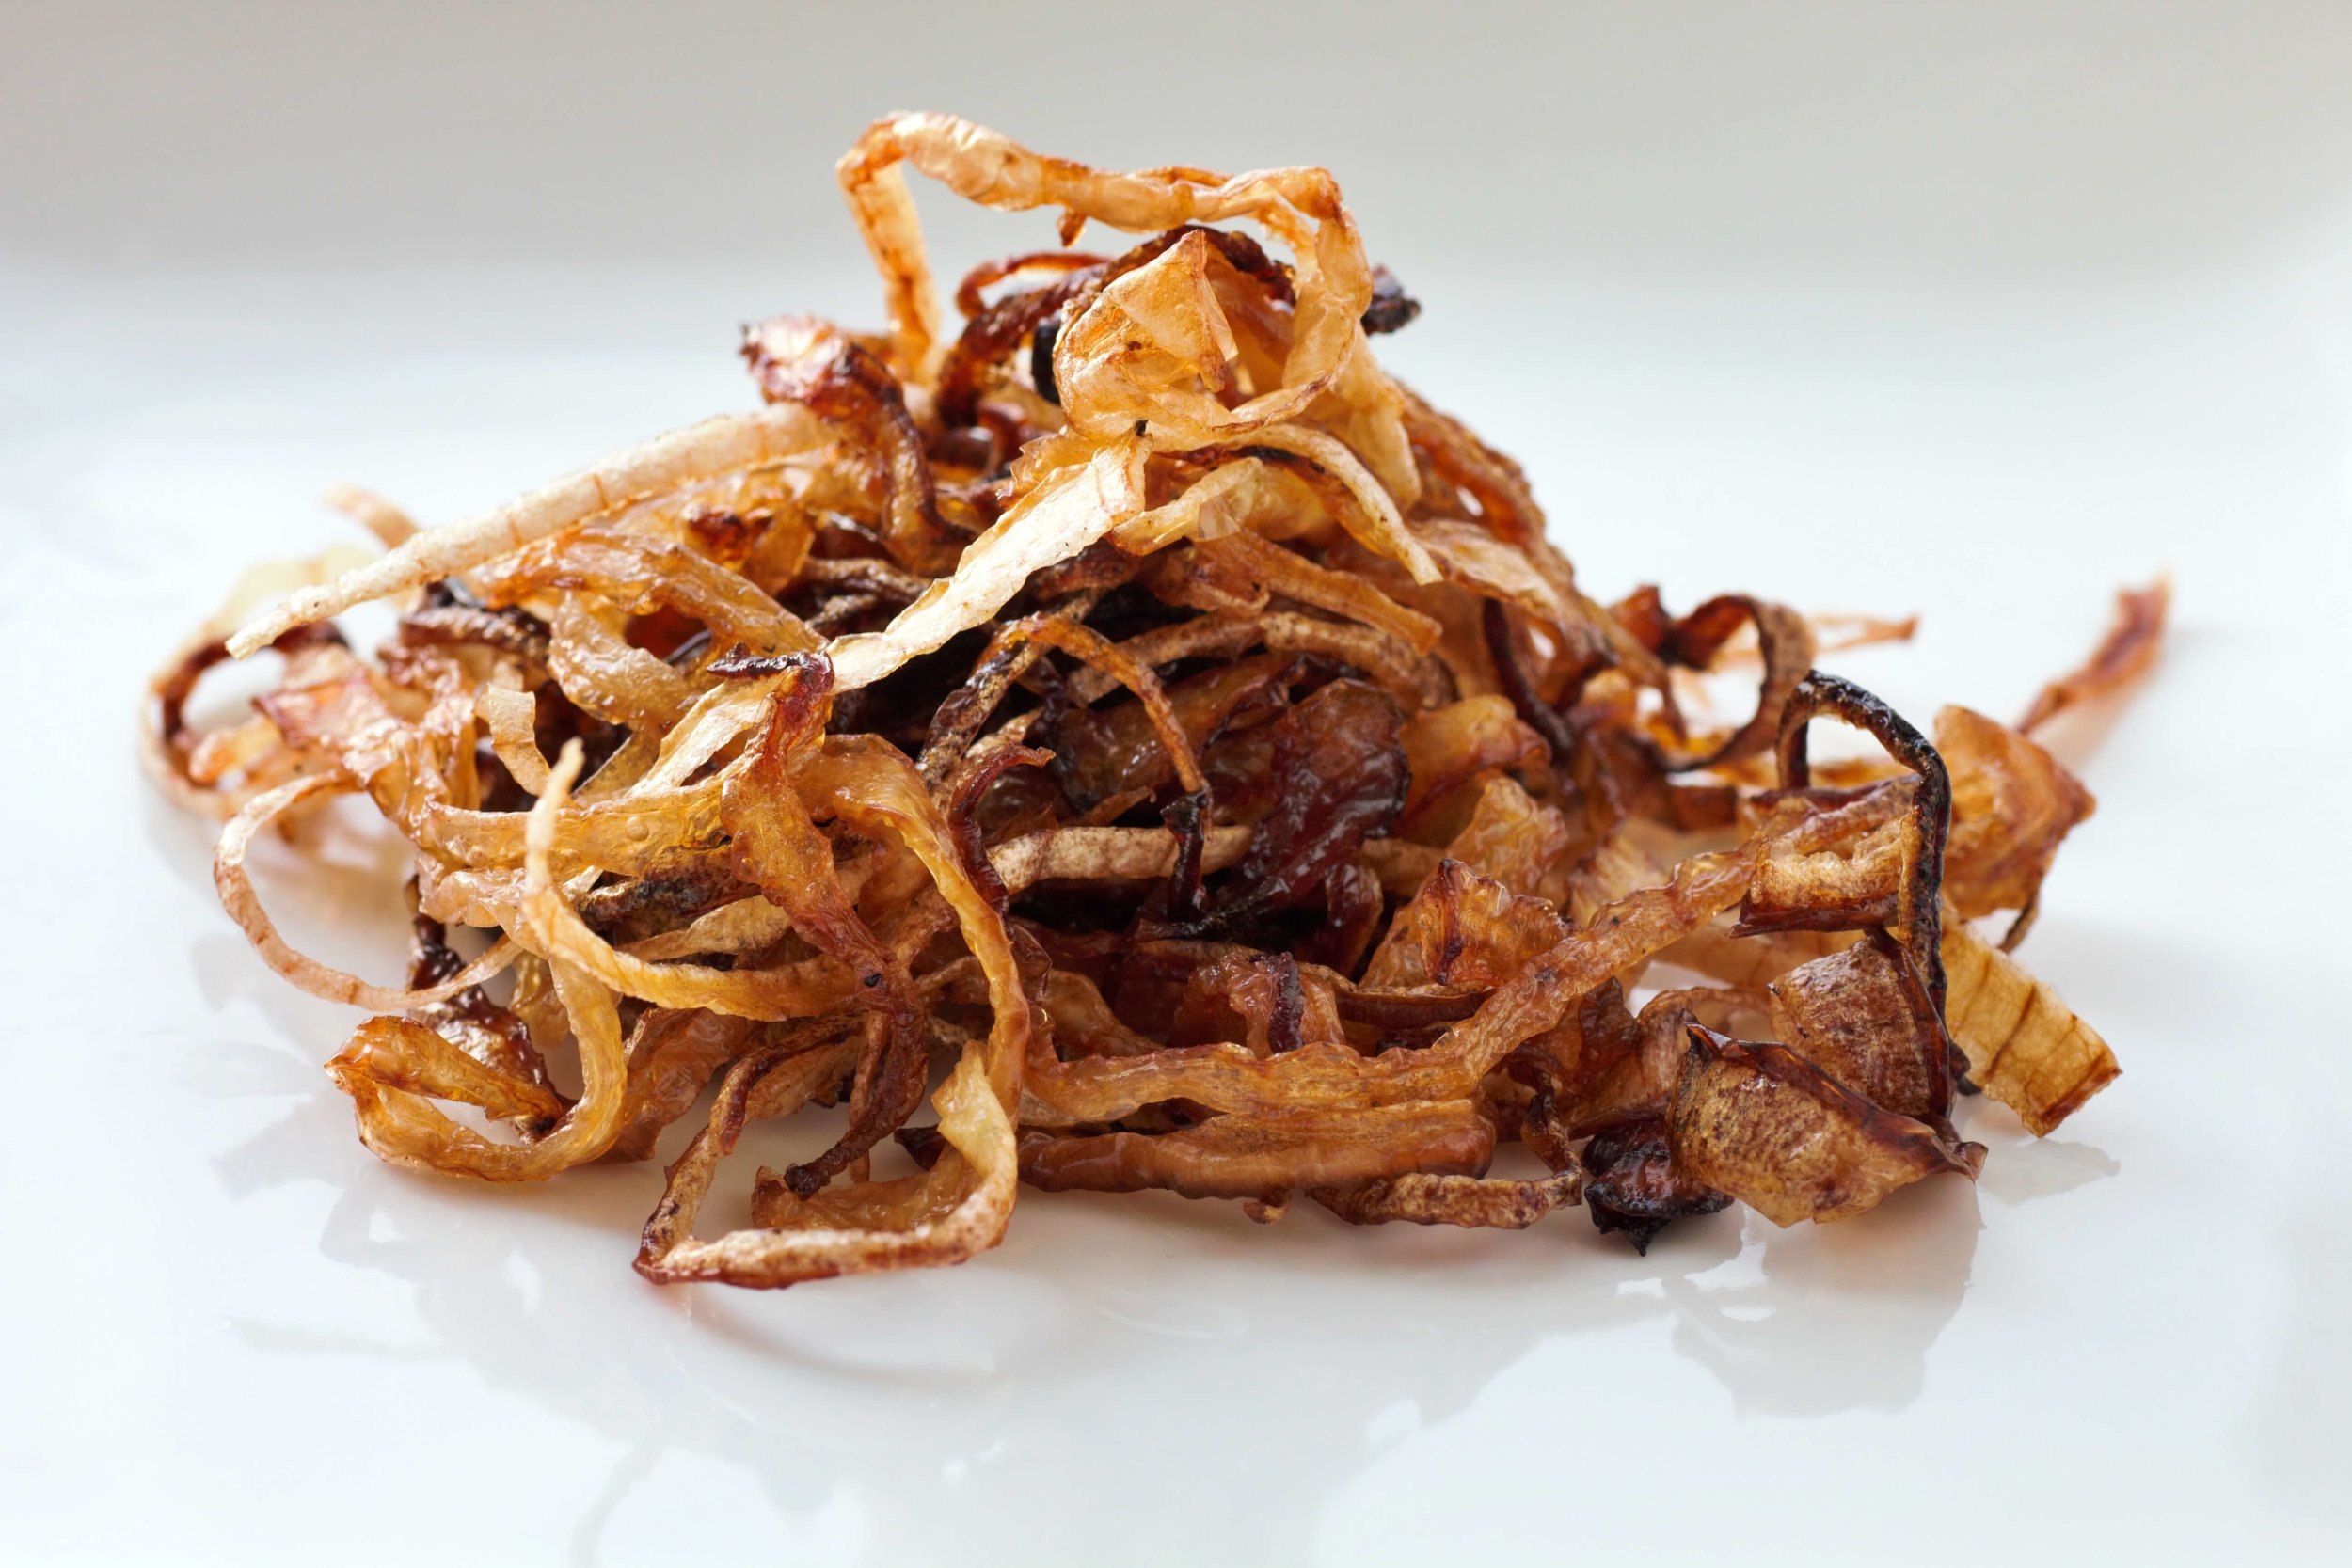 Keto fried onions make perfectly crispy strands of onion, delicious on everything from steaks to sandwiches. Best of all, there's no breading needed!